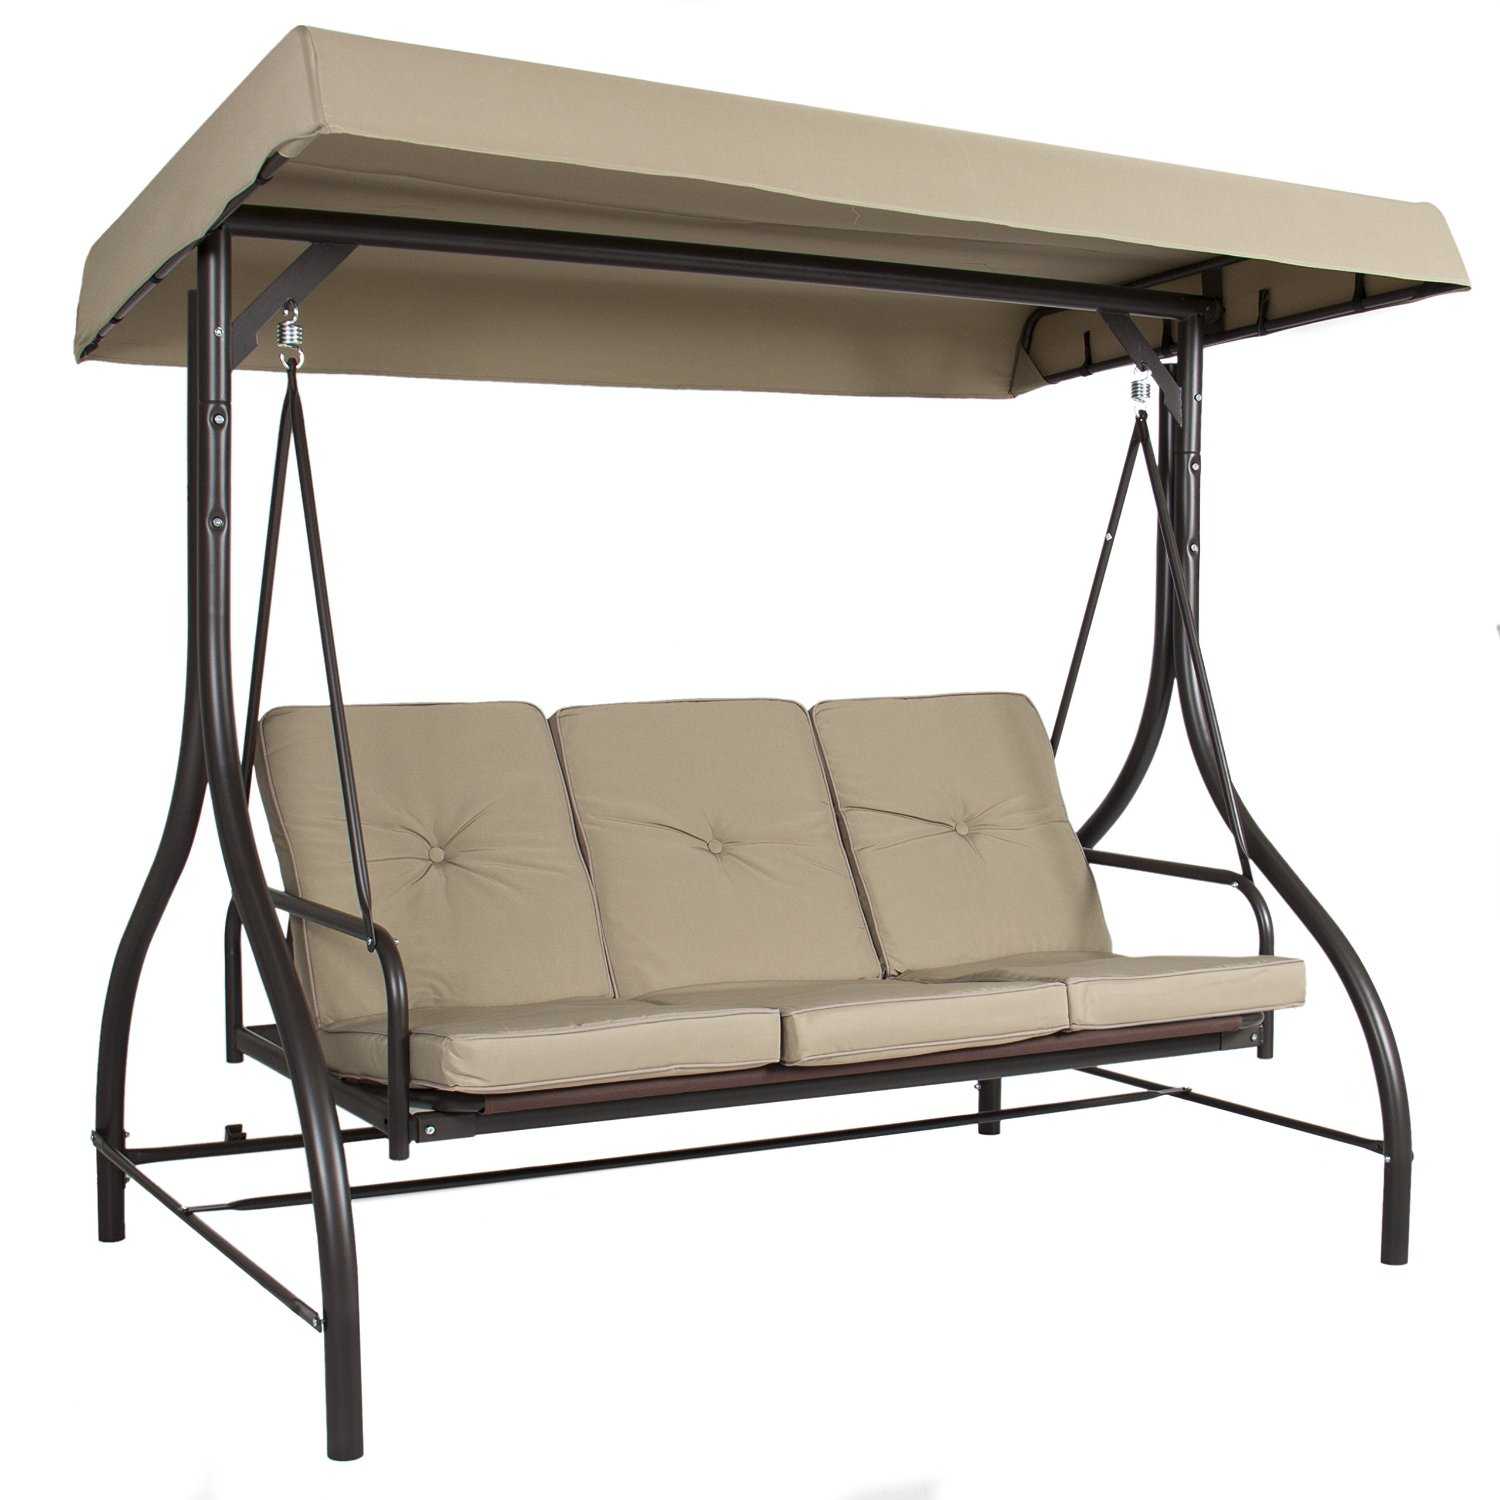 canopy chairs best price recliner rocker chair covers outdoor 3 person patio porch swing hammock bench